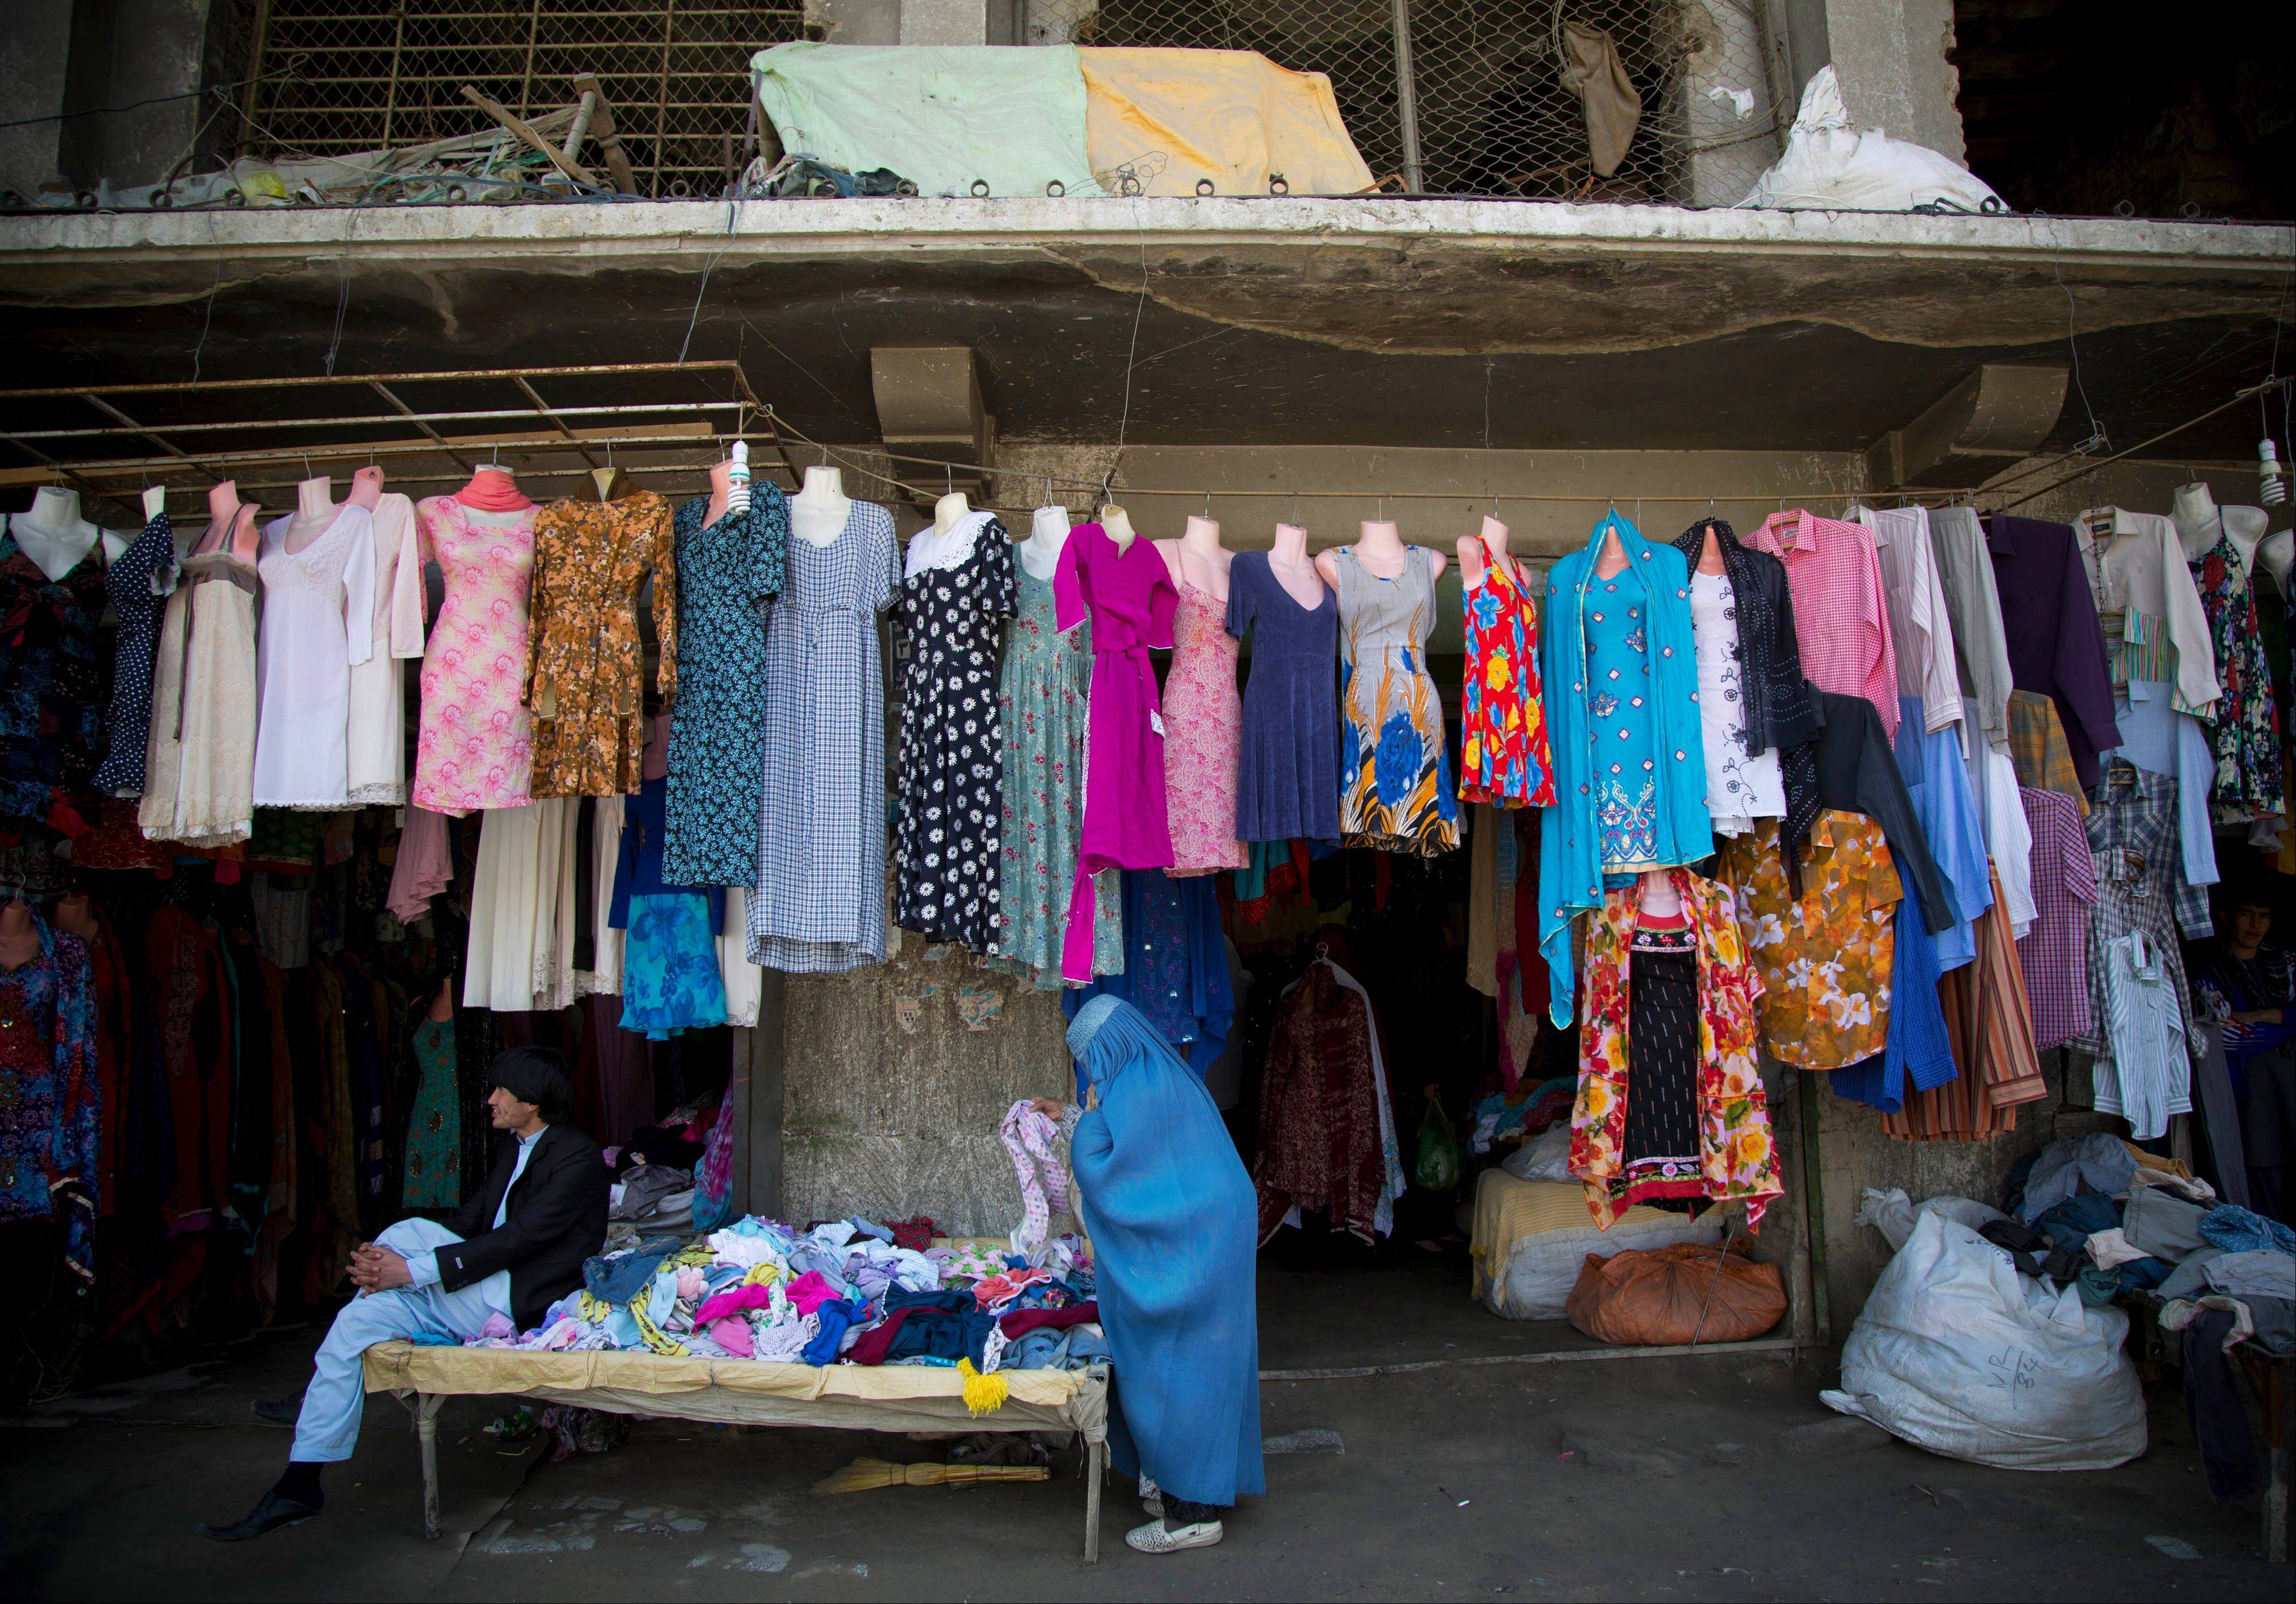 An Afghan woman shops for clothing in the old town of Kabul, Afghanistan. Despite advances in womenís rights, Afghanistan remains a deeply conservative country and most women continue to wear the Burqa. But tradesmen say times are changing in Kabul at least, with demand for burqas declining as young women going to school and taking office jobs refuse to wear the cumbersome garments.